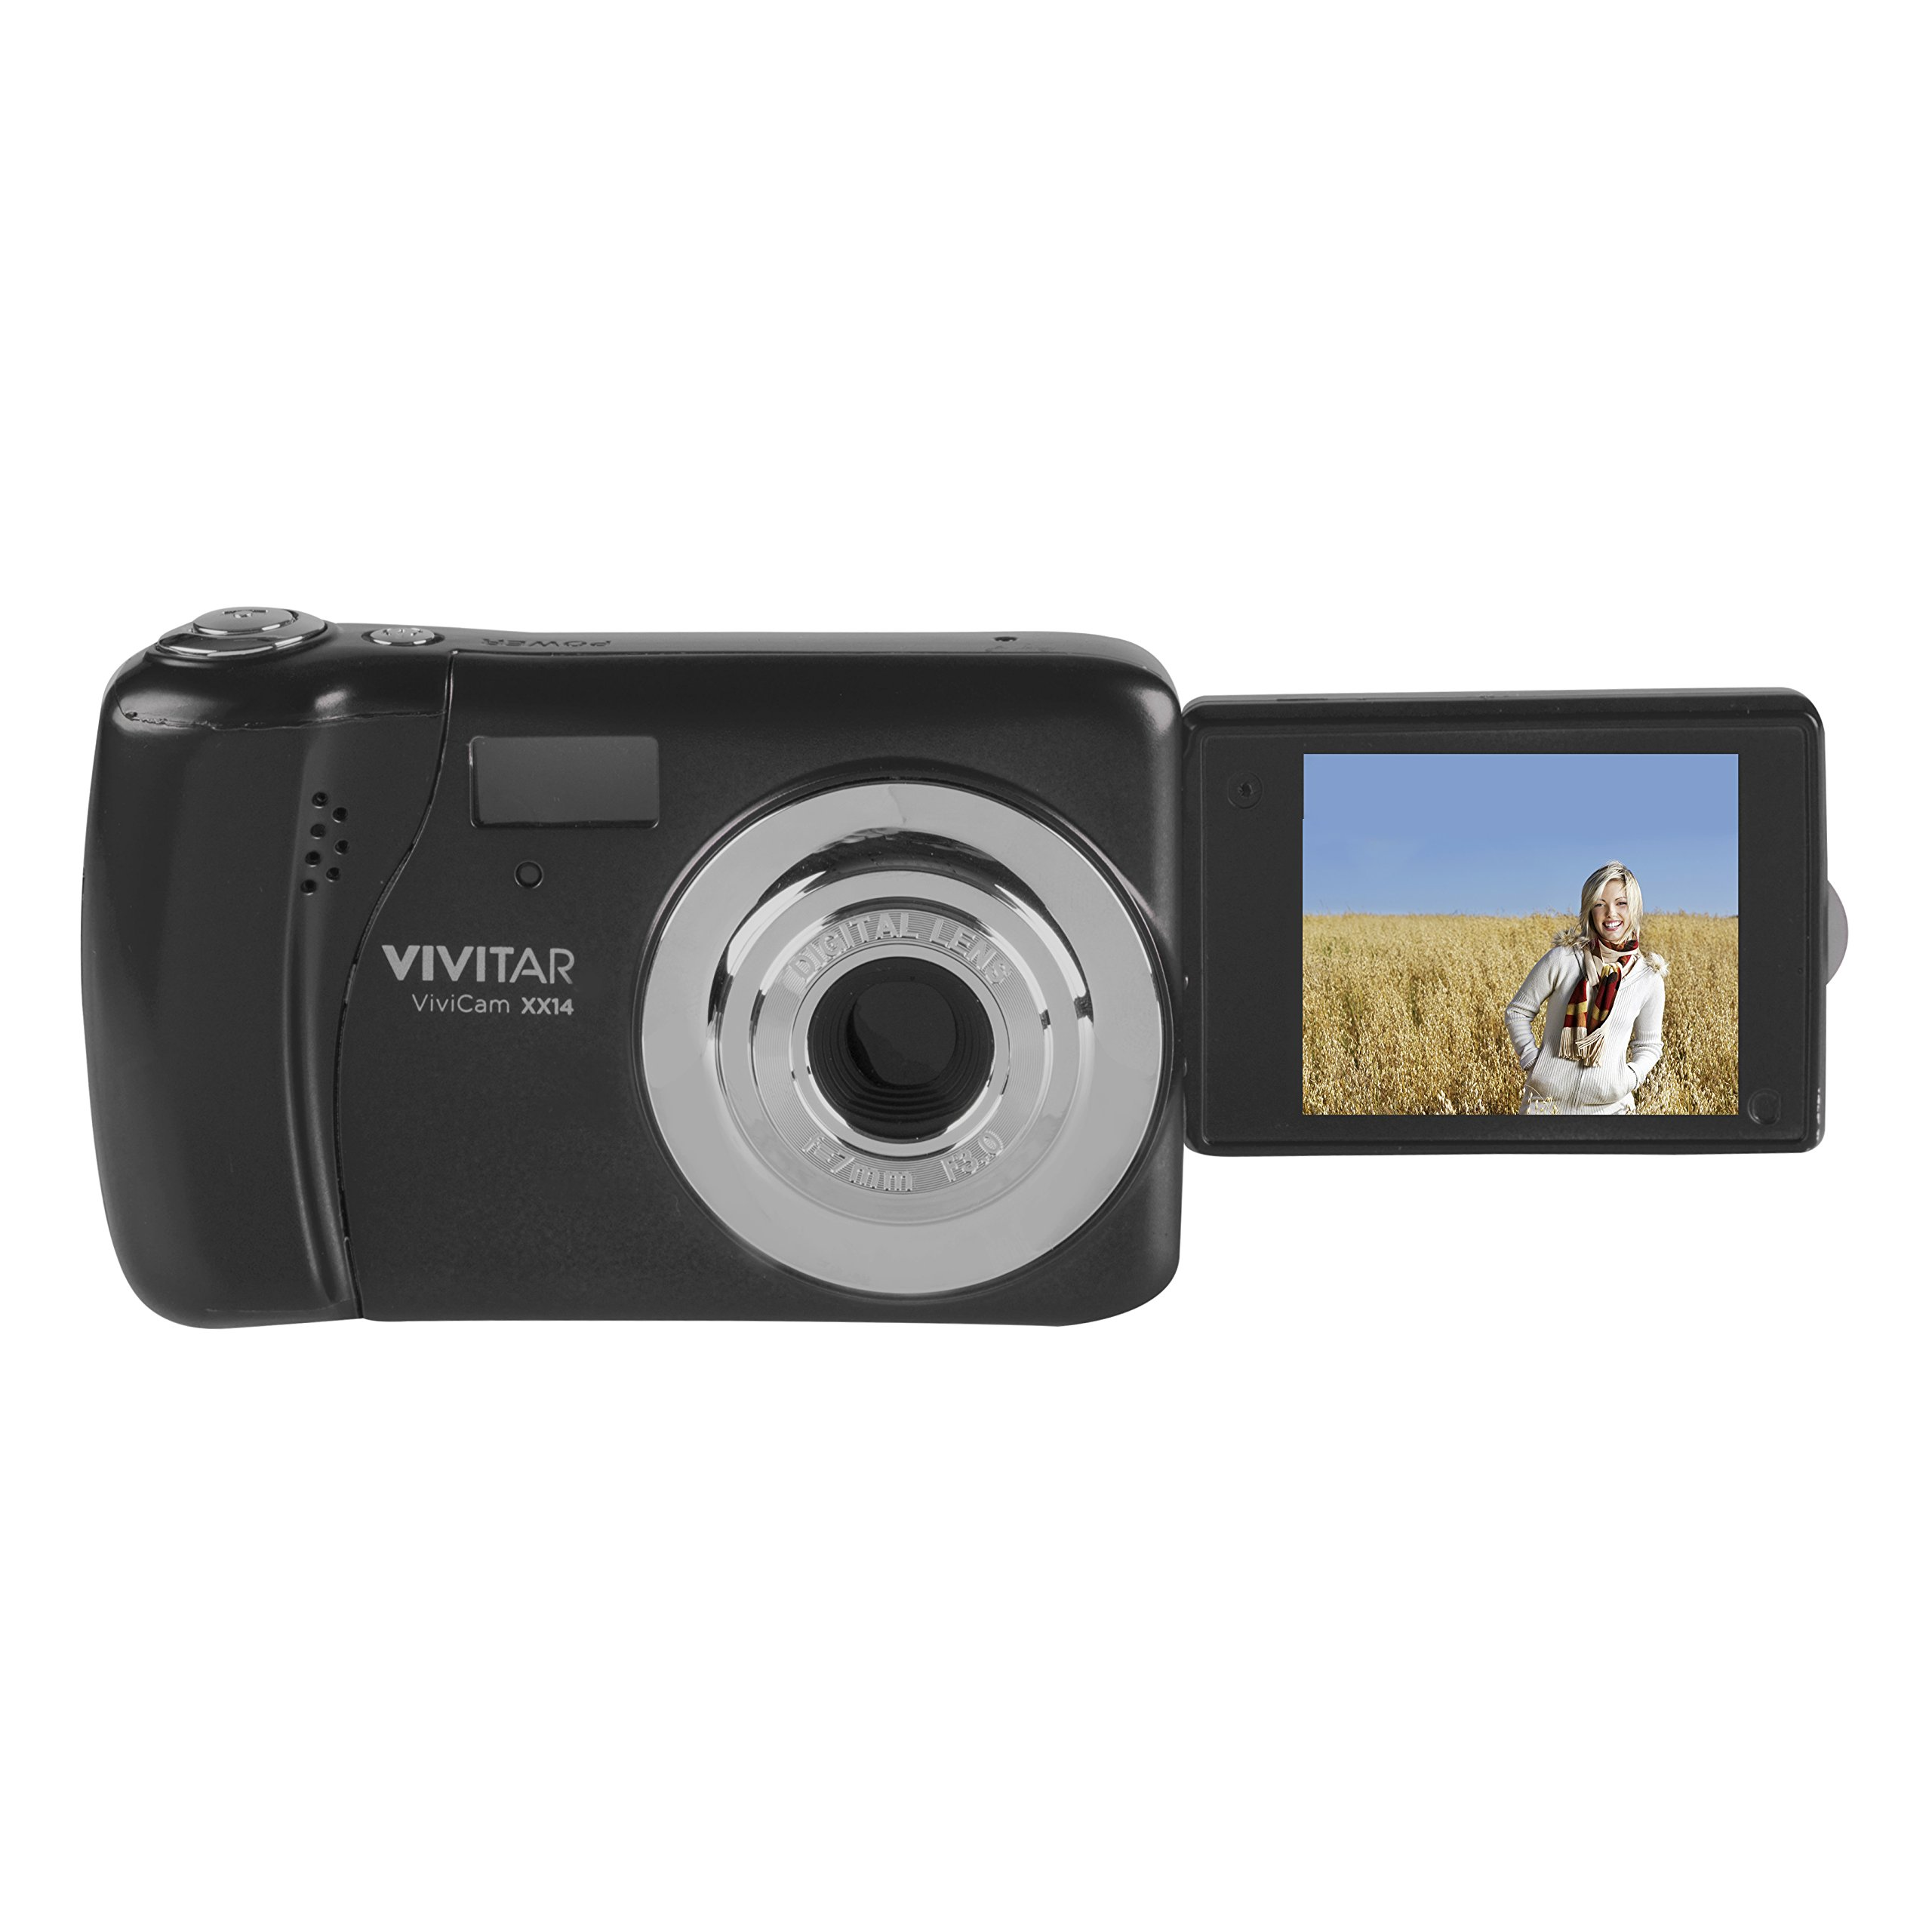 Vivitar 20.1 MP Digital Camera with 1.8'' LCD, Colors and Style May Vary by Vivitar